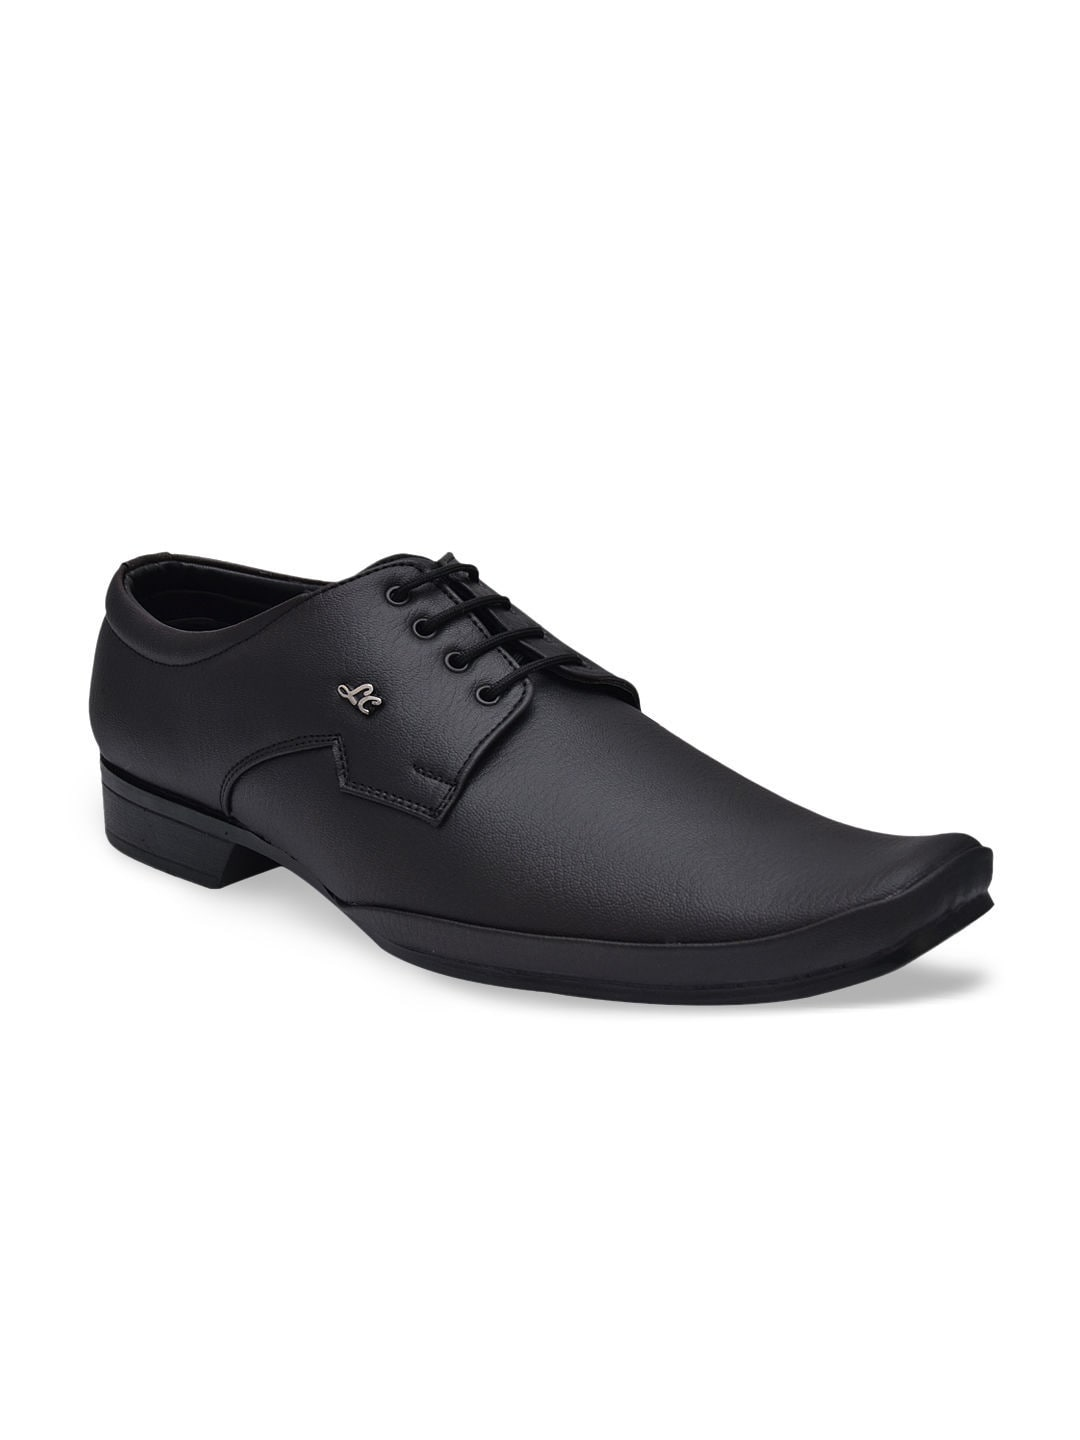 b00f1958d Black Formal Shoes - Buy Black Formal Shoes Online in India